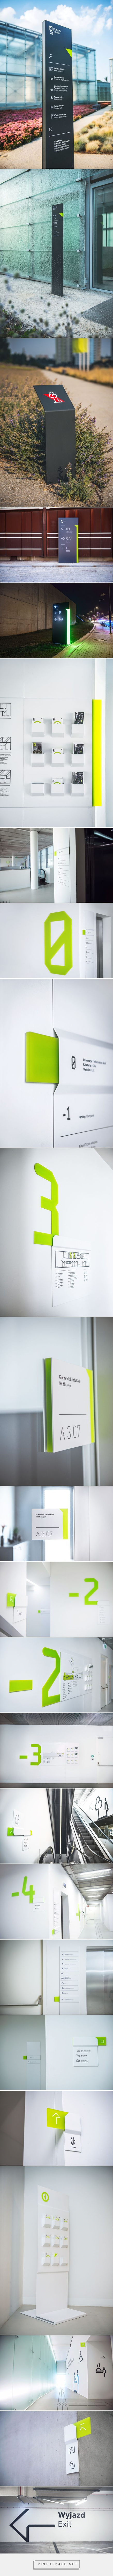 Wayfinding system in Silesian Museum on Behance - created via https://pinthemall.net